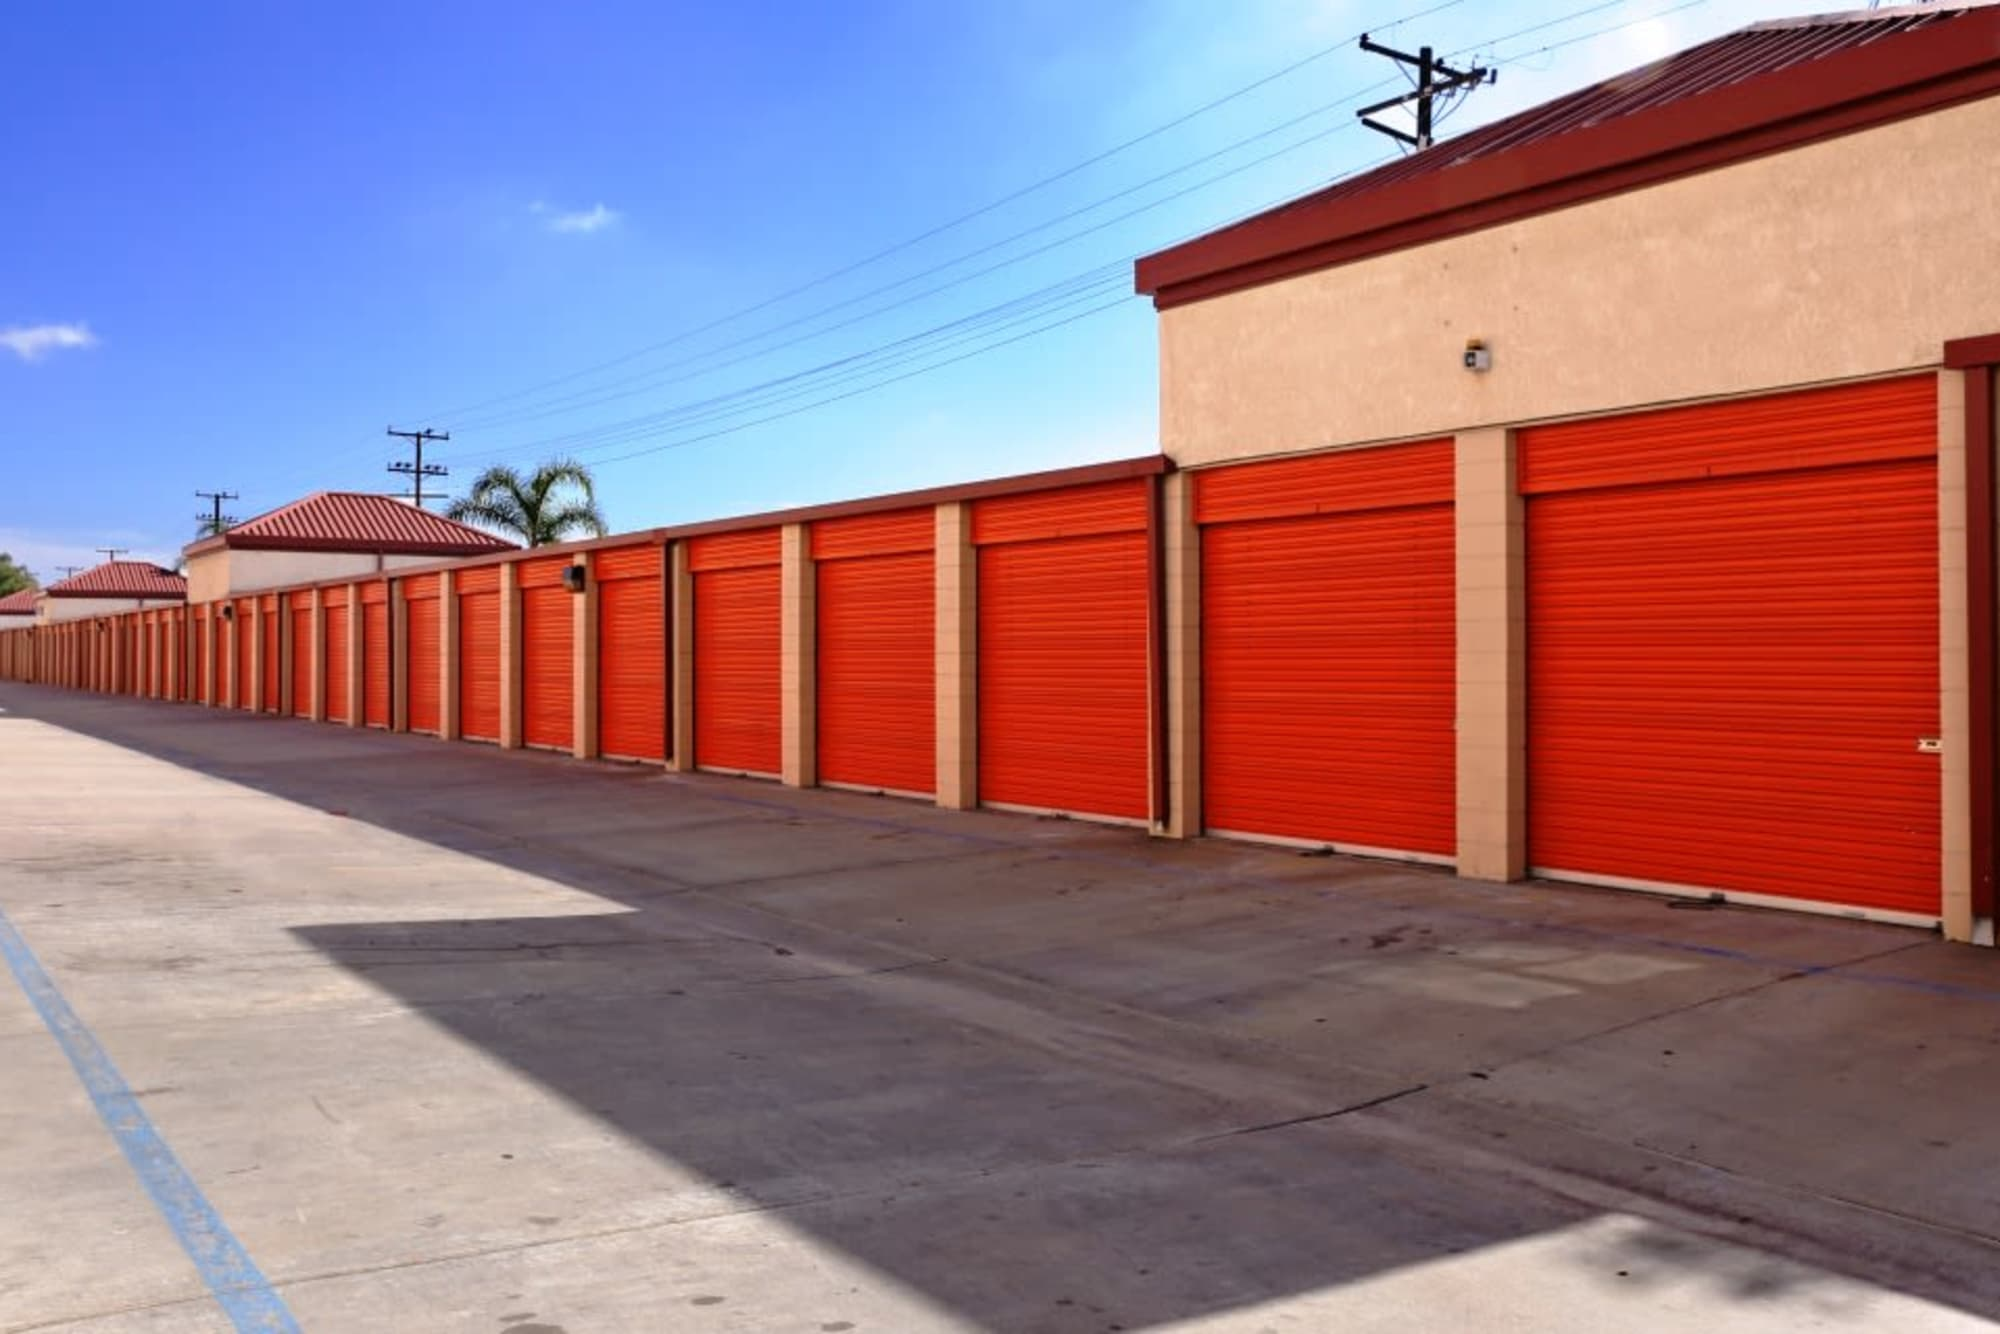 Outdoor storage units at A-1 Self Storage in Fullerton, California